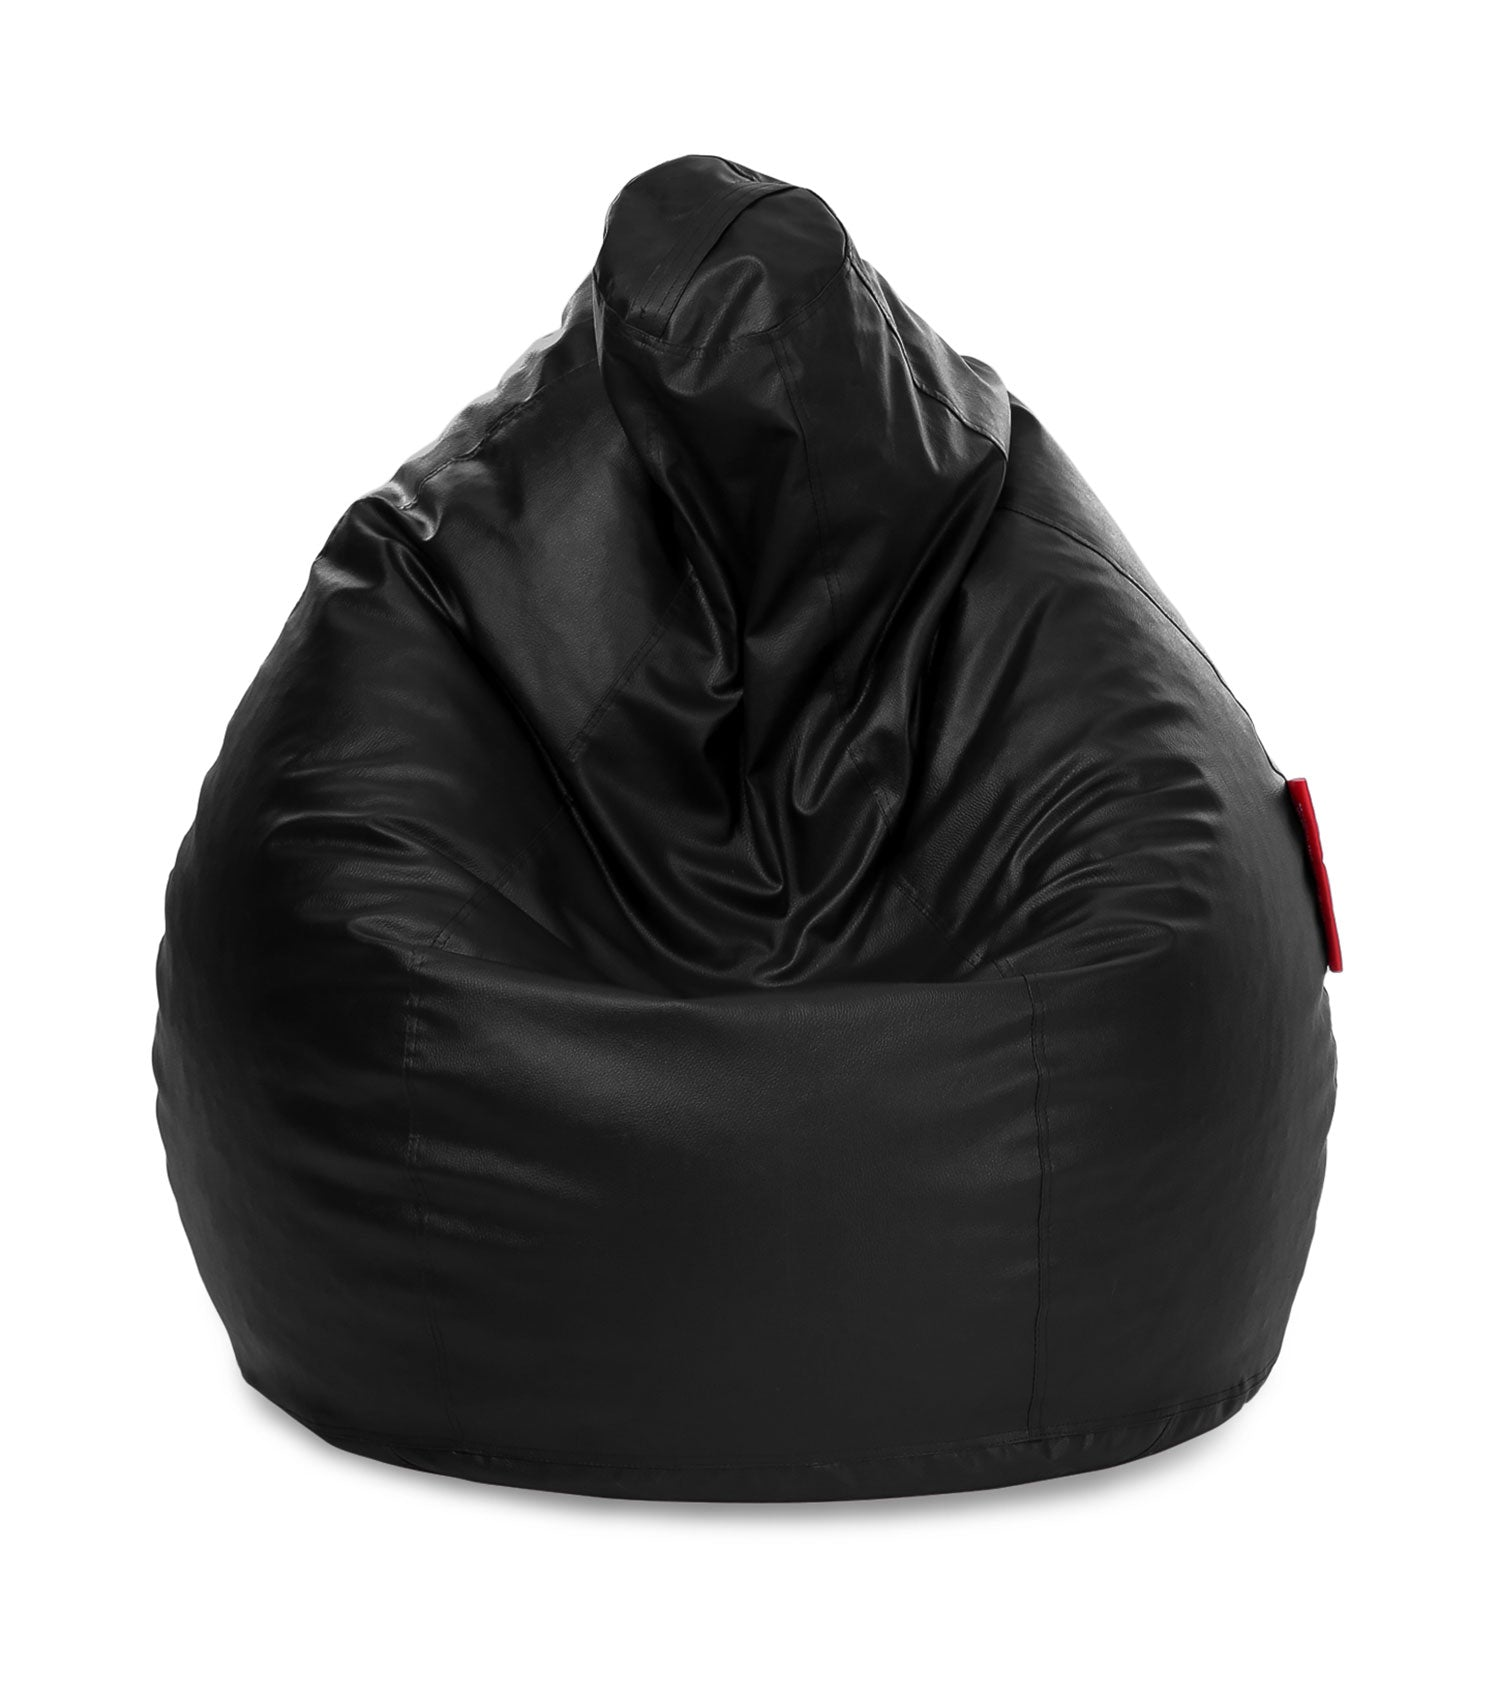 Fantastic Black Xxxl Sac Bean Bag With Fillers Bean Bag Onthecornerstone Fun Painted Chair Ideas Images Onthecornerstoneorg